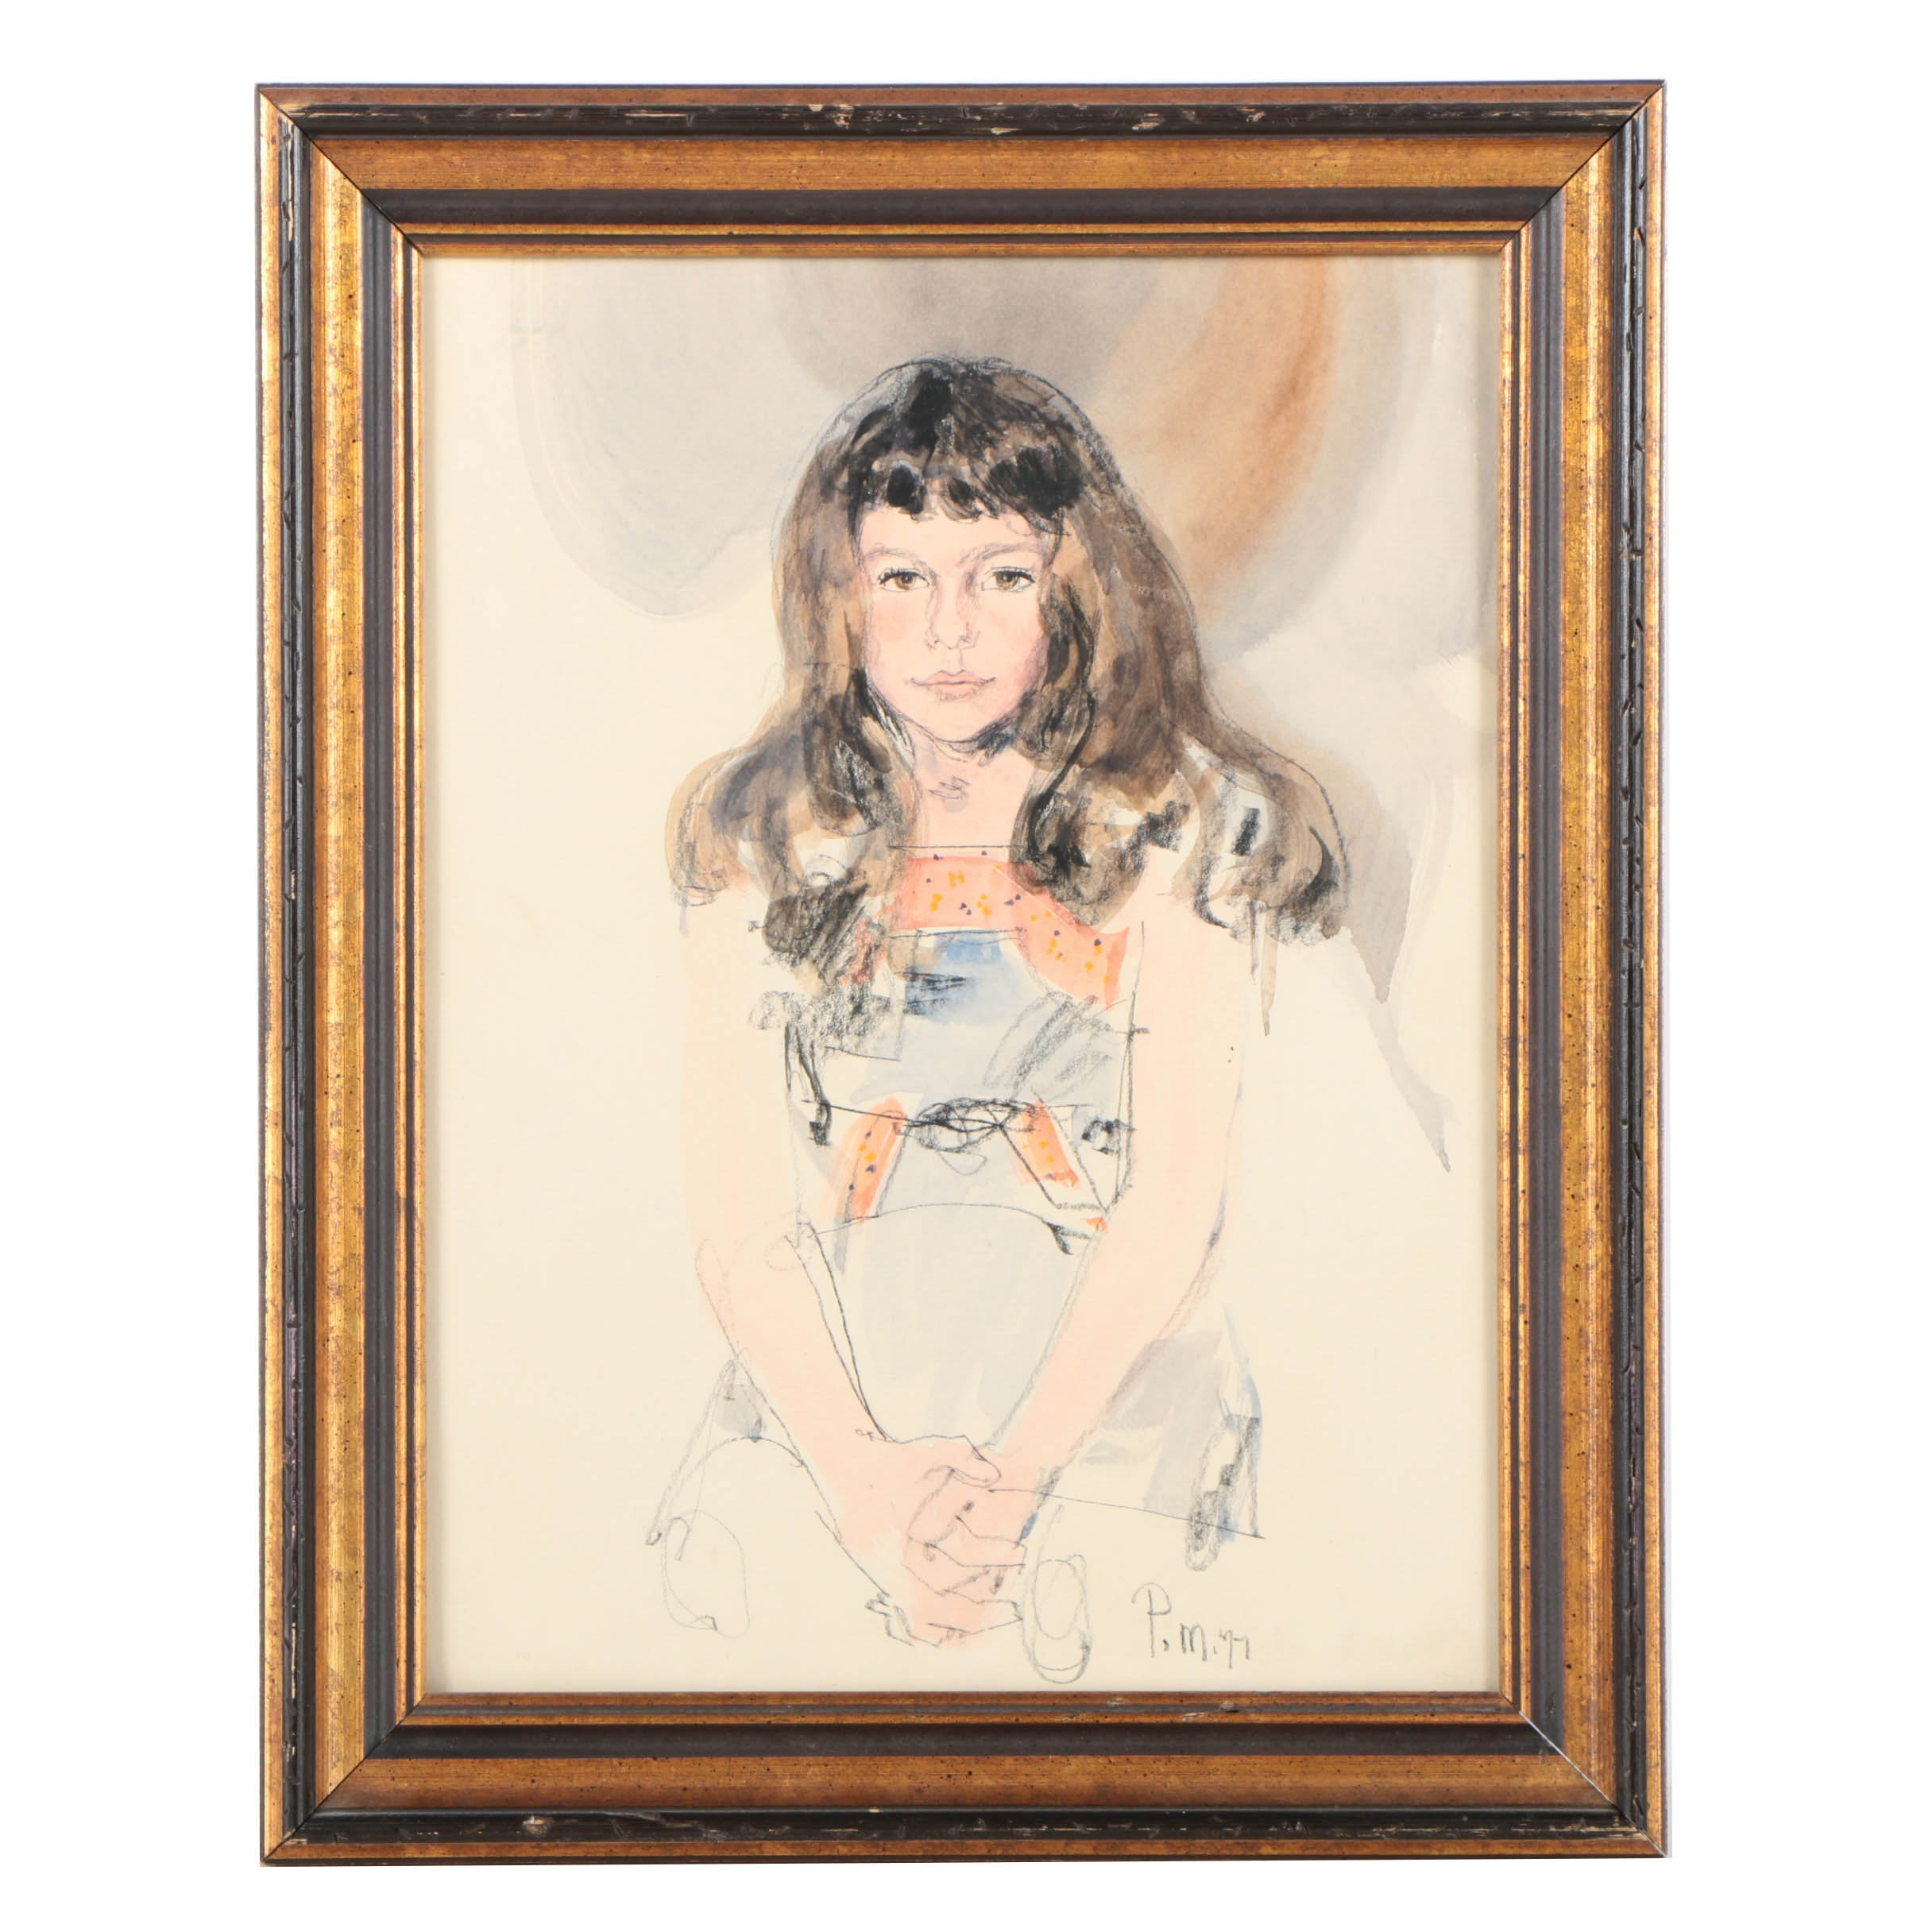 Paul Melia Watercolor and Crayon Portrait of a Girl